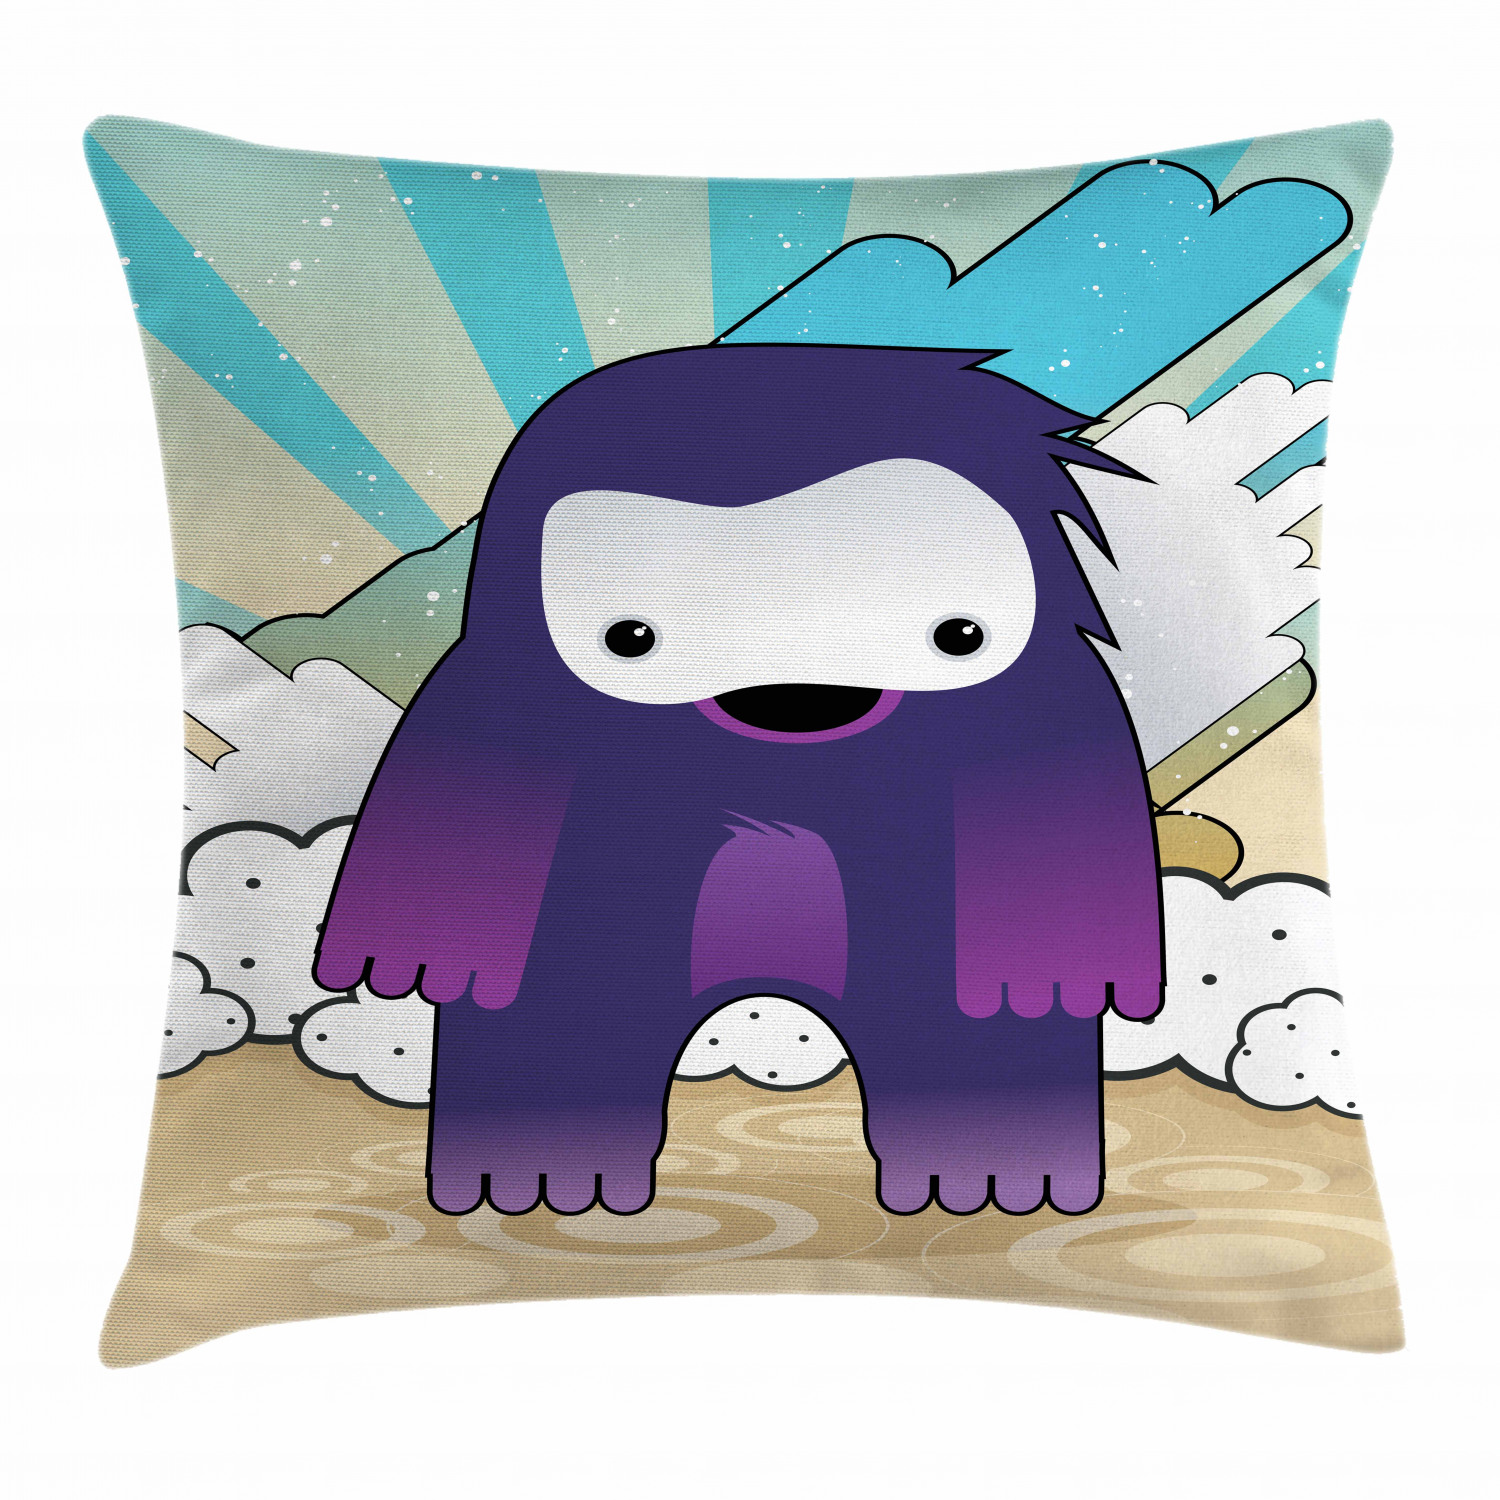 anime throw pillow cushion cover japanese manga character fantastic monster on an abstract retro style background decorative square accent pillow